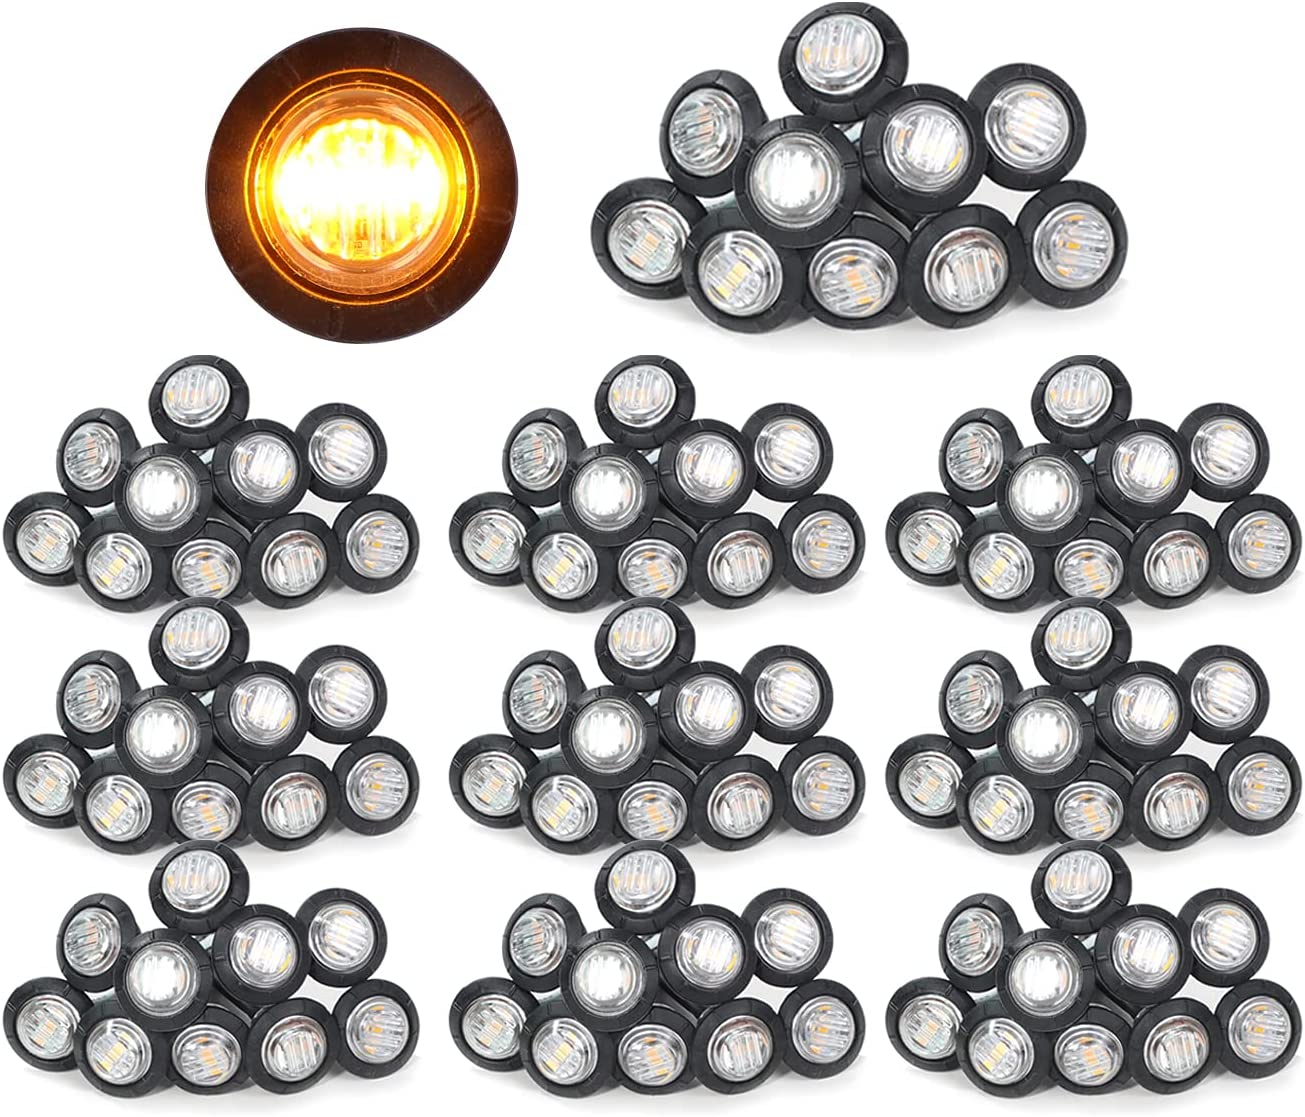 MADCATZ Pack Store of 100 3 Bombing new work 4 Inch Round LED 2835 Lens Clear Amber